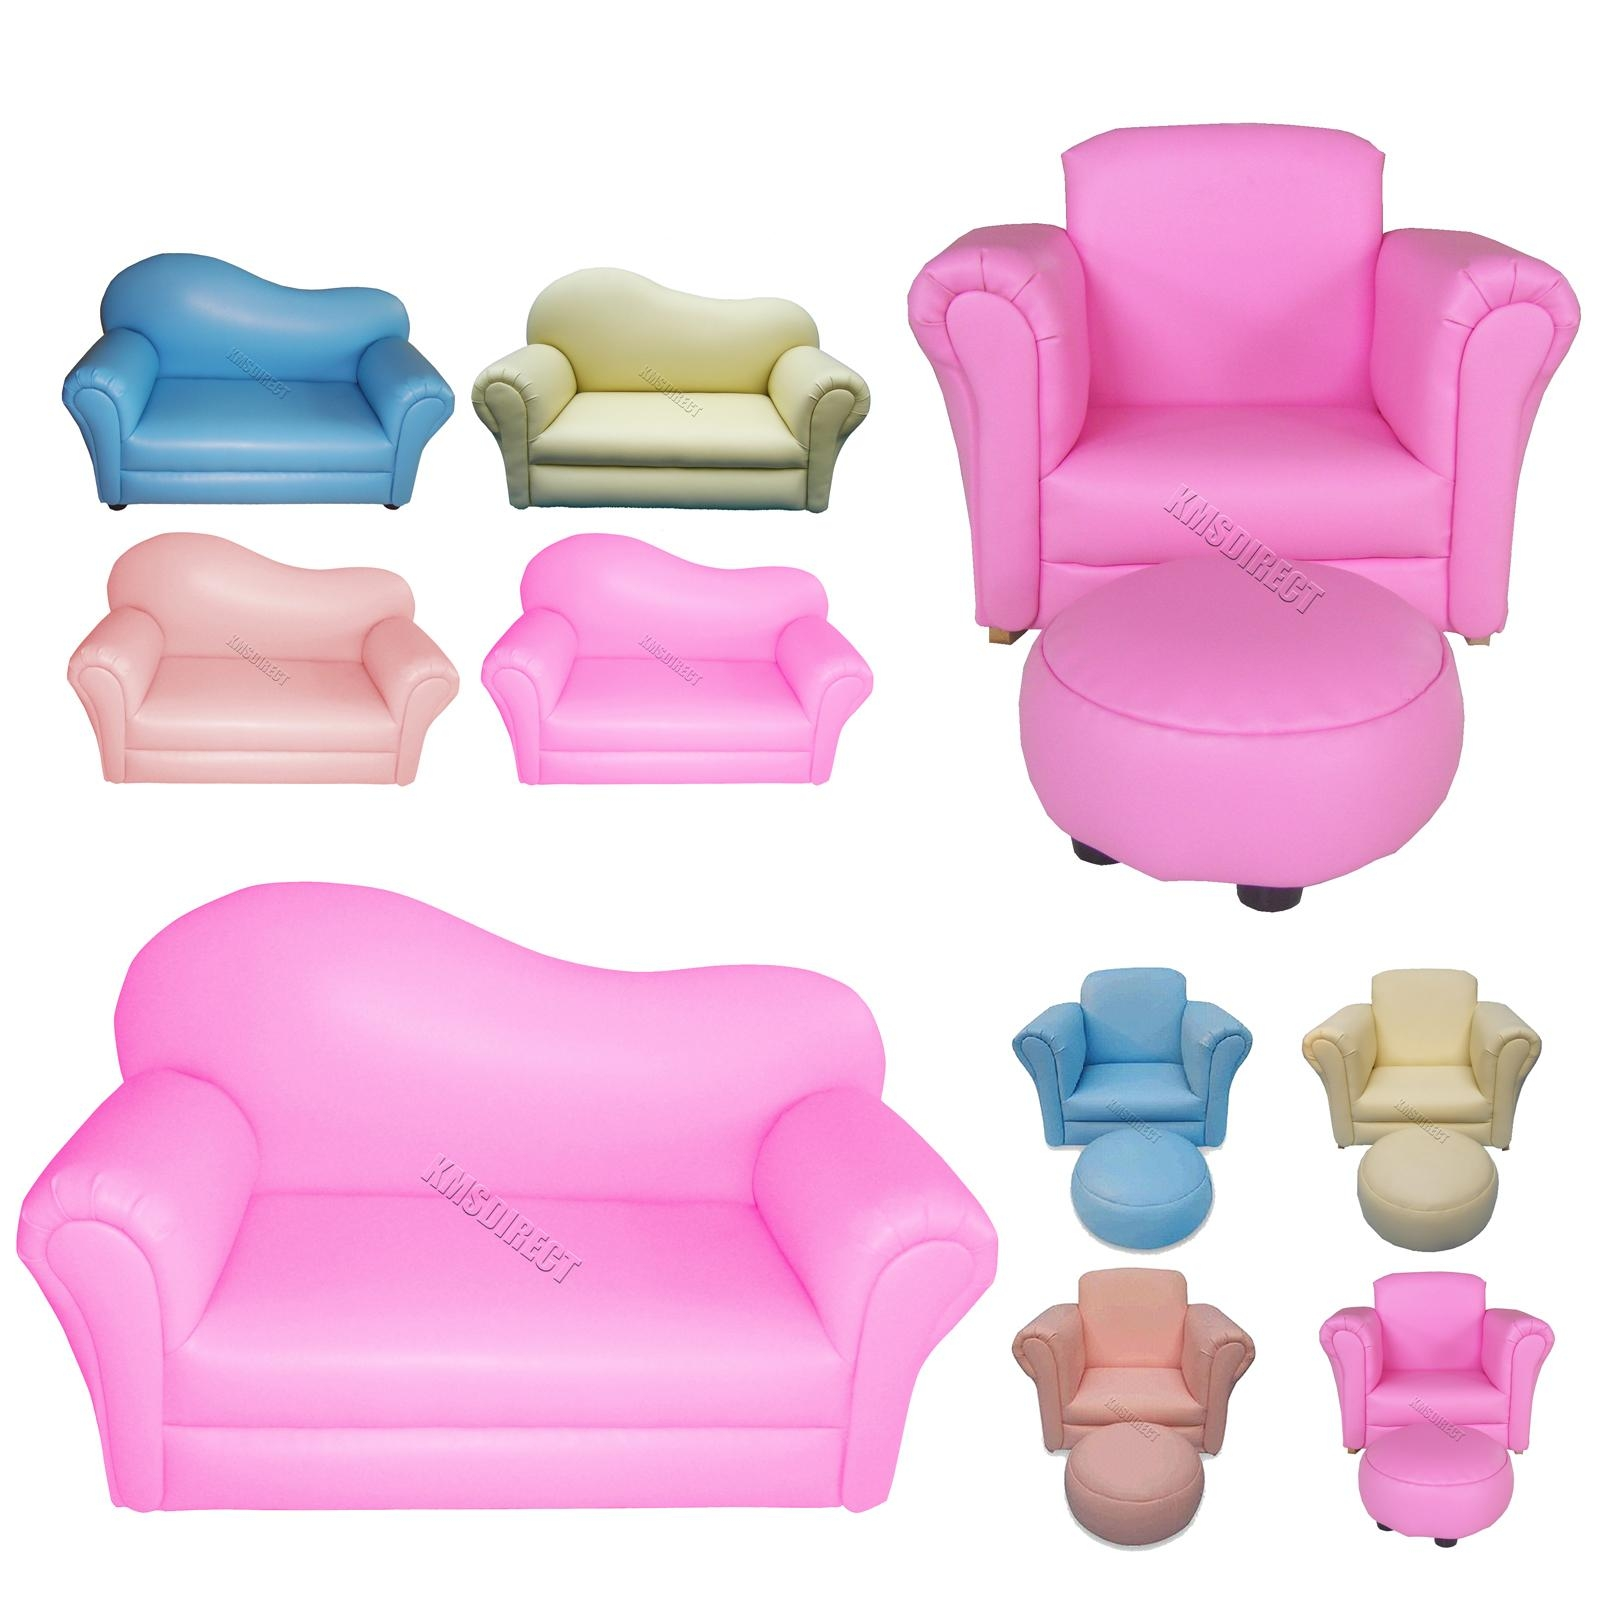 Children Kids Child Sofa Bedroom Furniture Armchair Couch Seat Throughout Children Sofa Chairs (View 15 of 22)